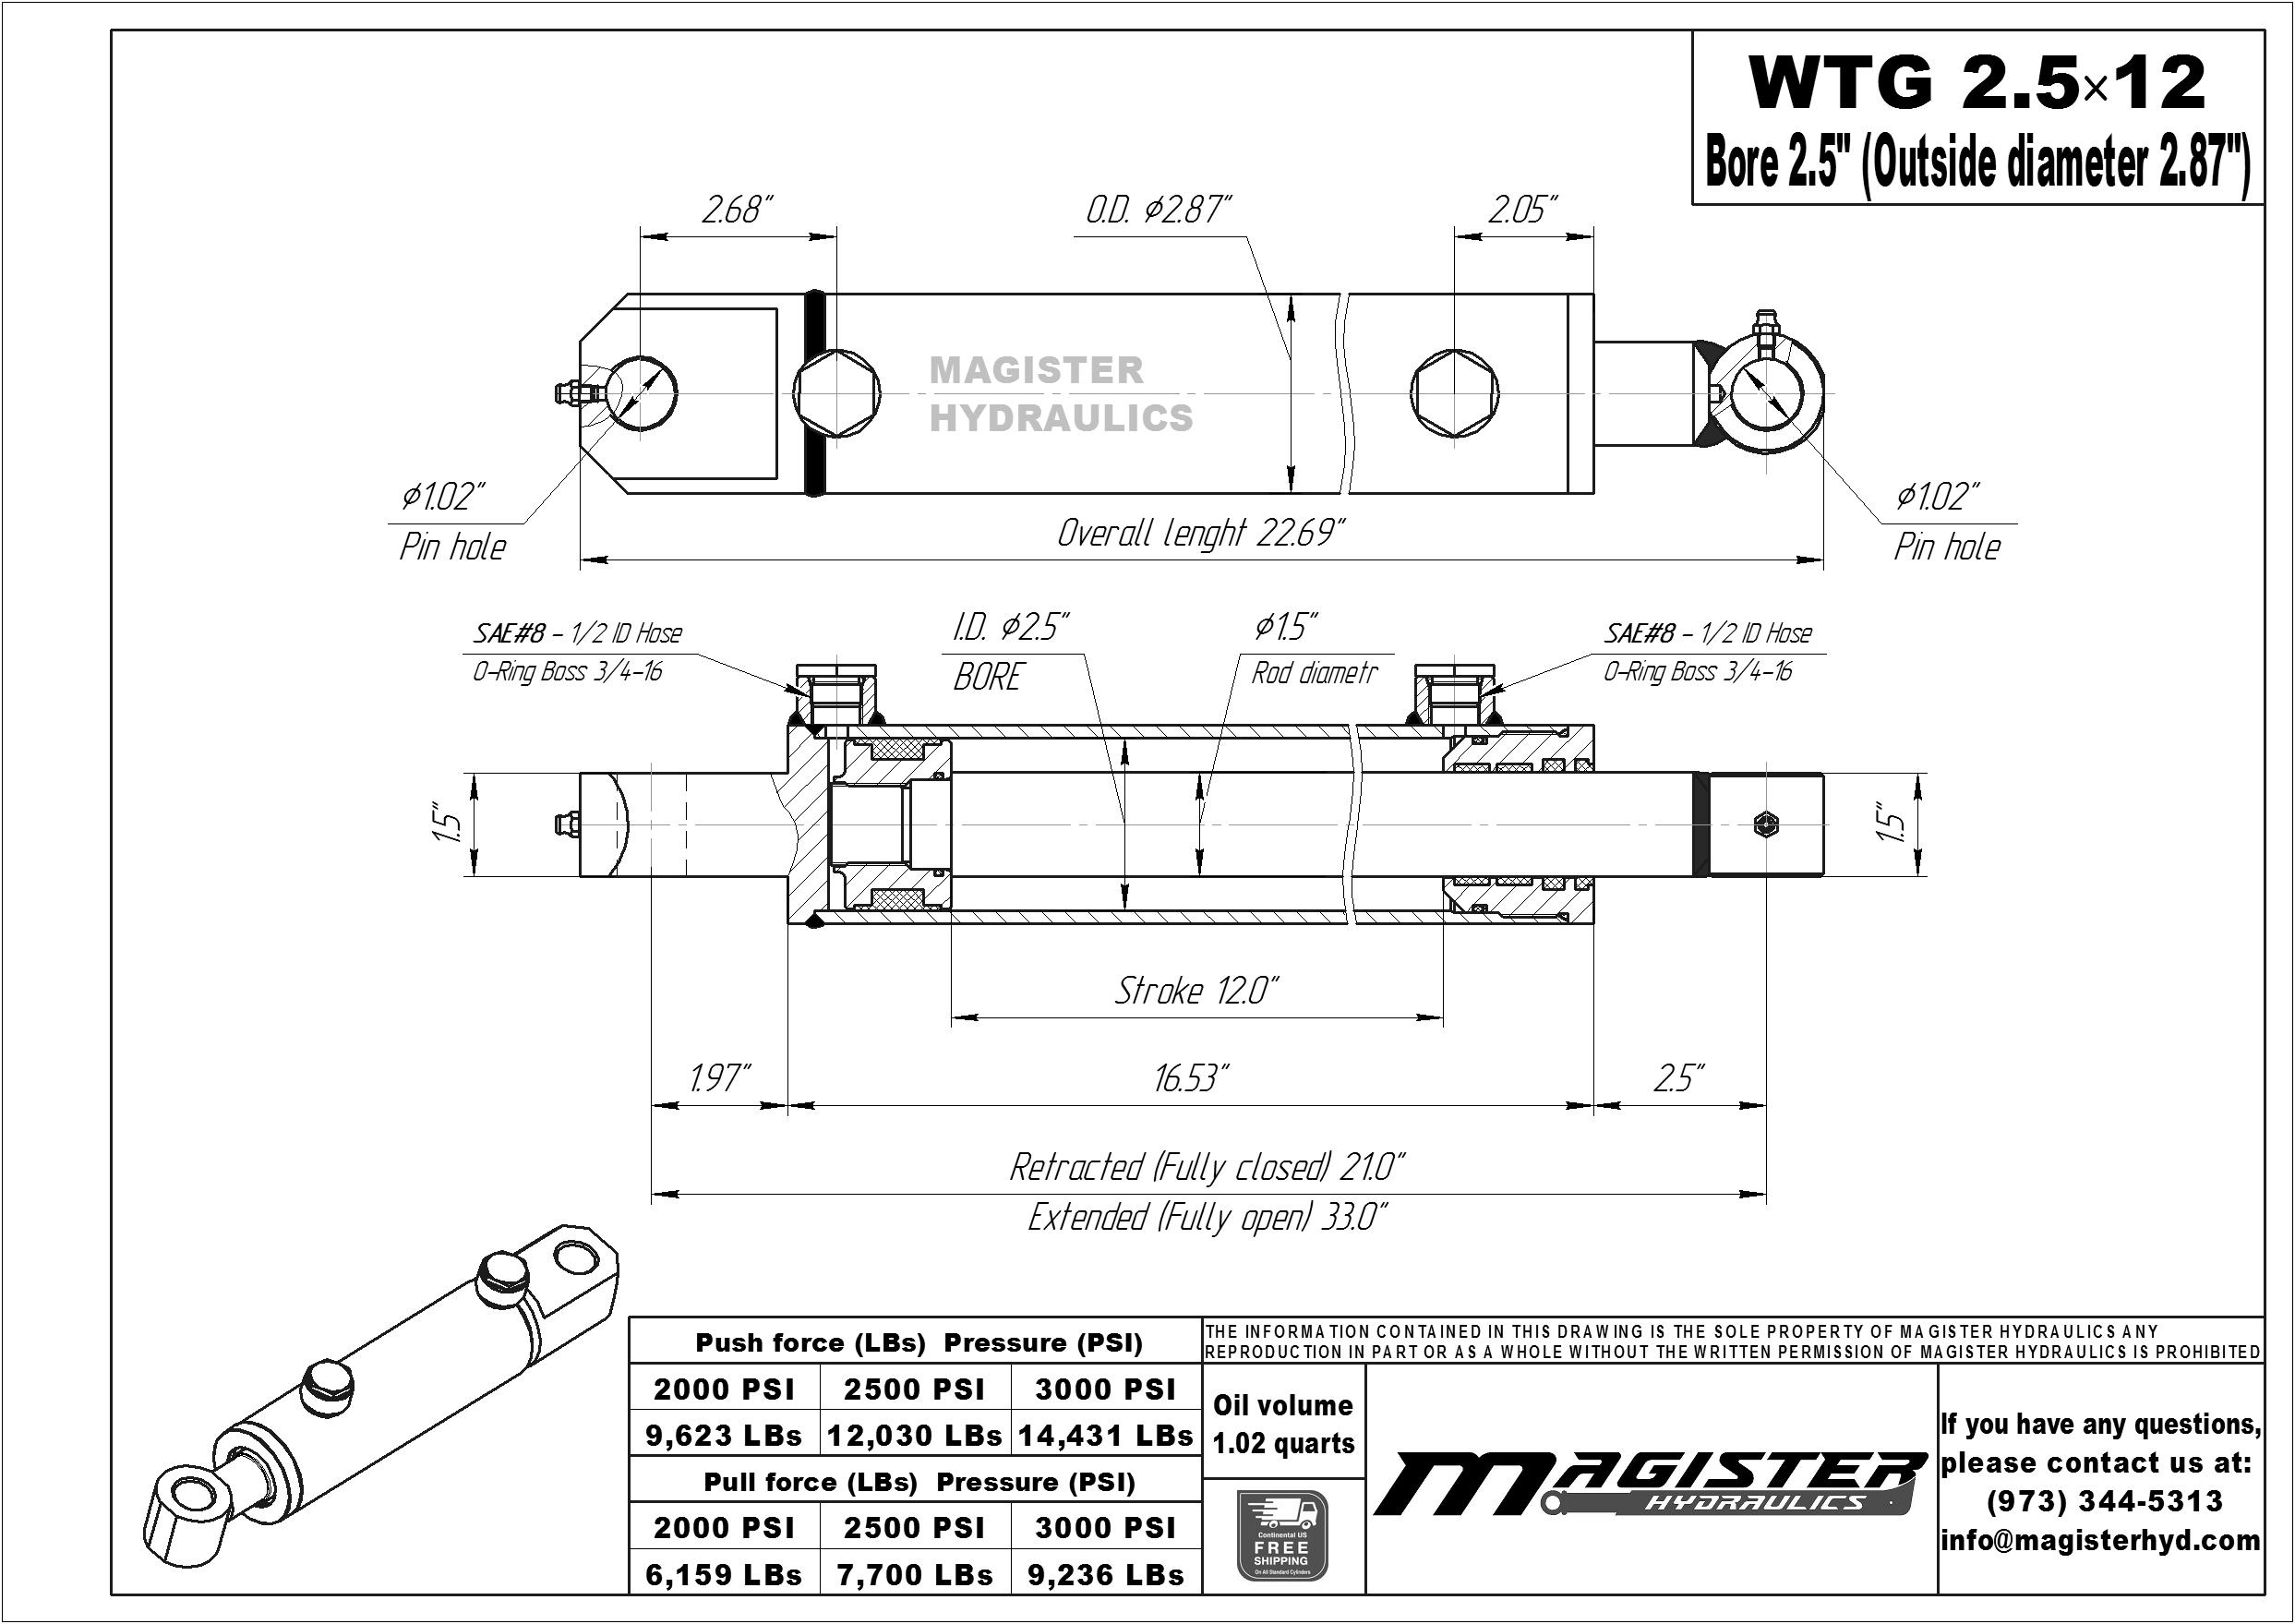 2.5 bore x 12 stroke hydraulic cylinder, welded tang double acting cylinder | Magister Hydraulics